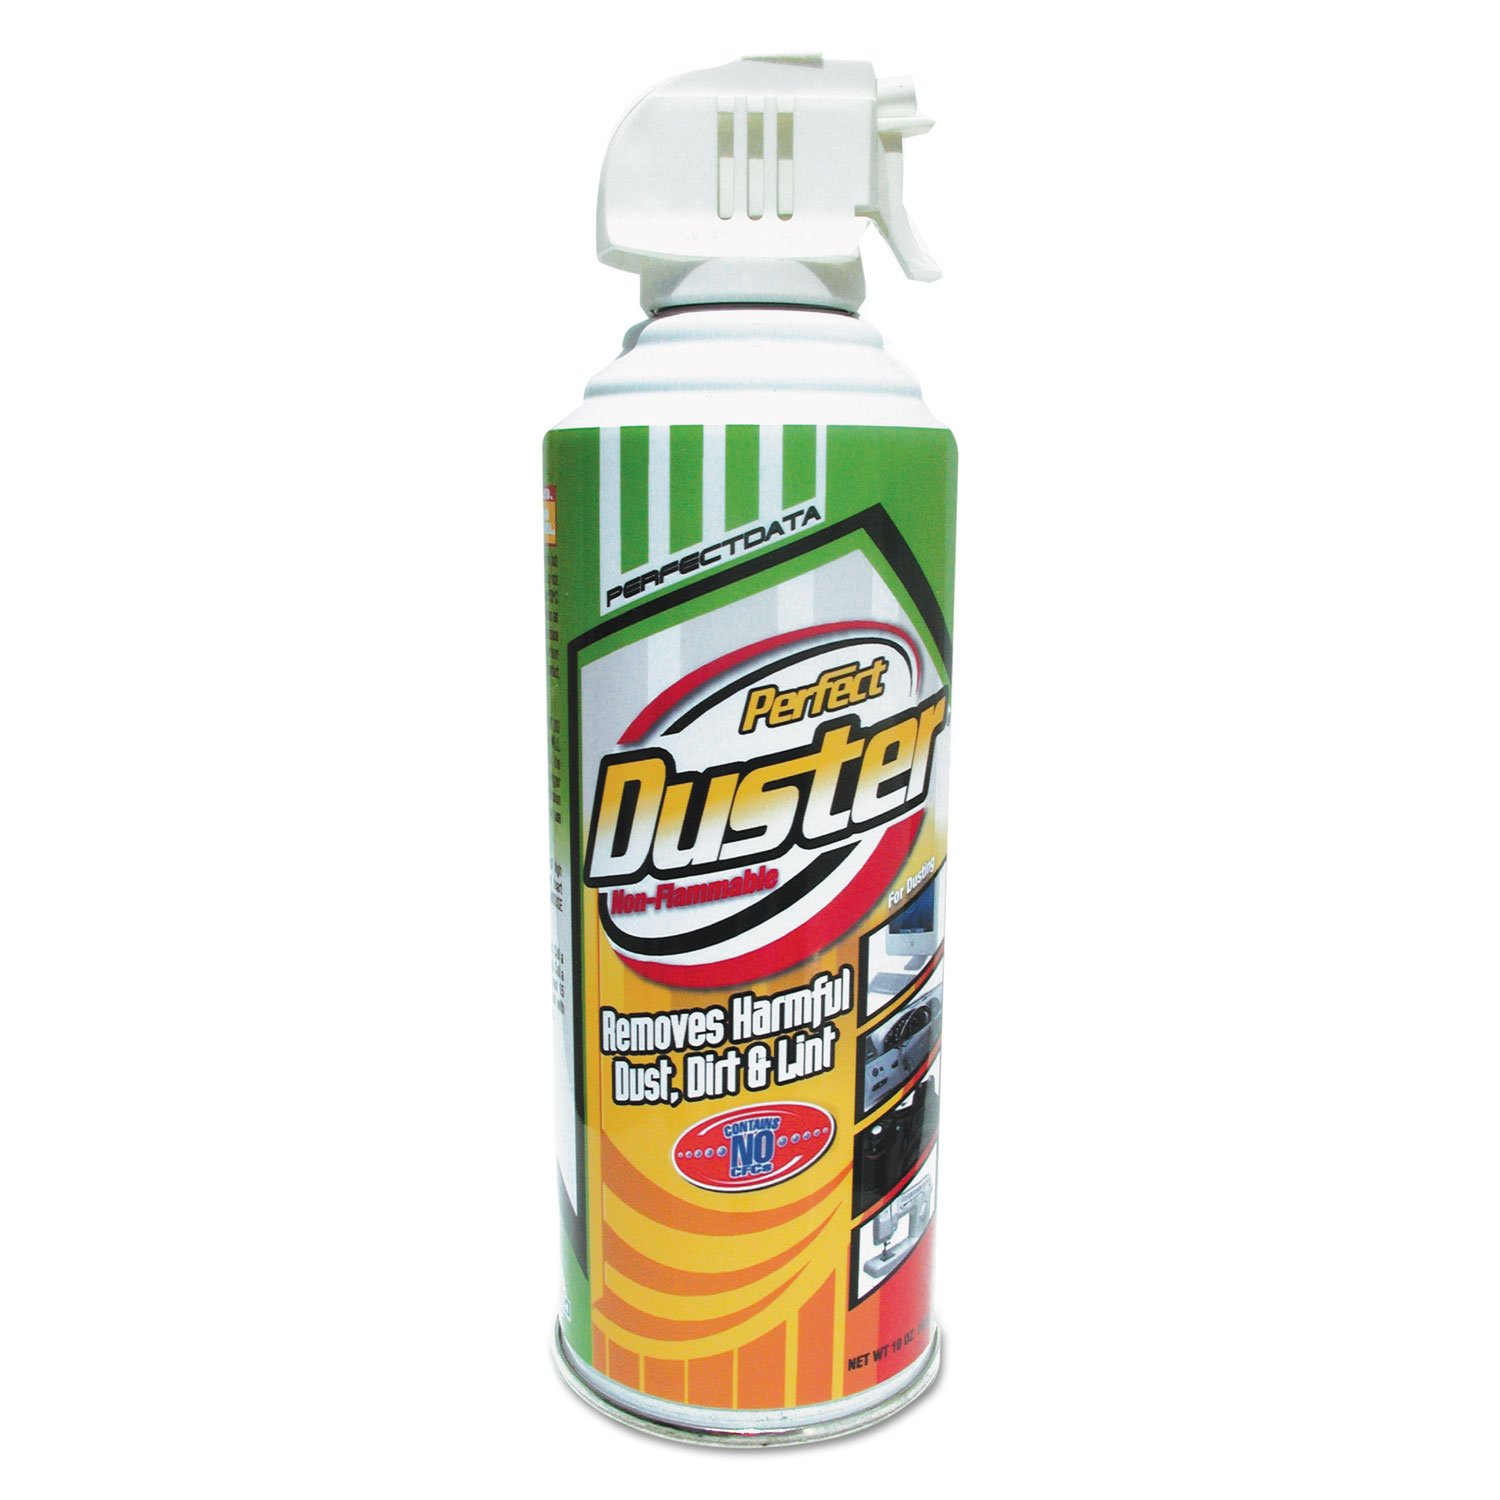 Perfect Duster Non-Flammable Power Duster, 10 oz Can